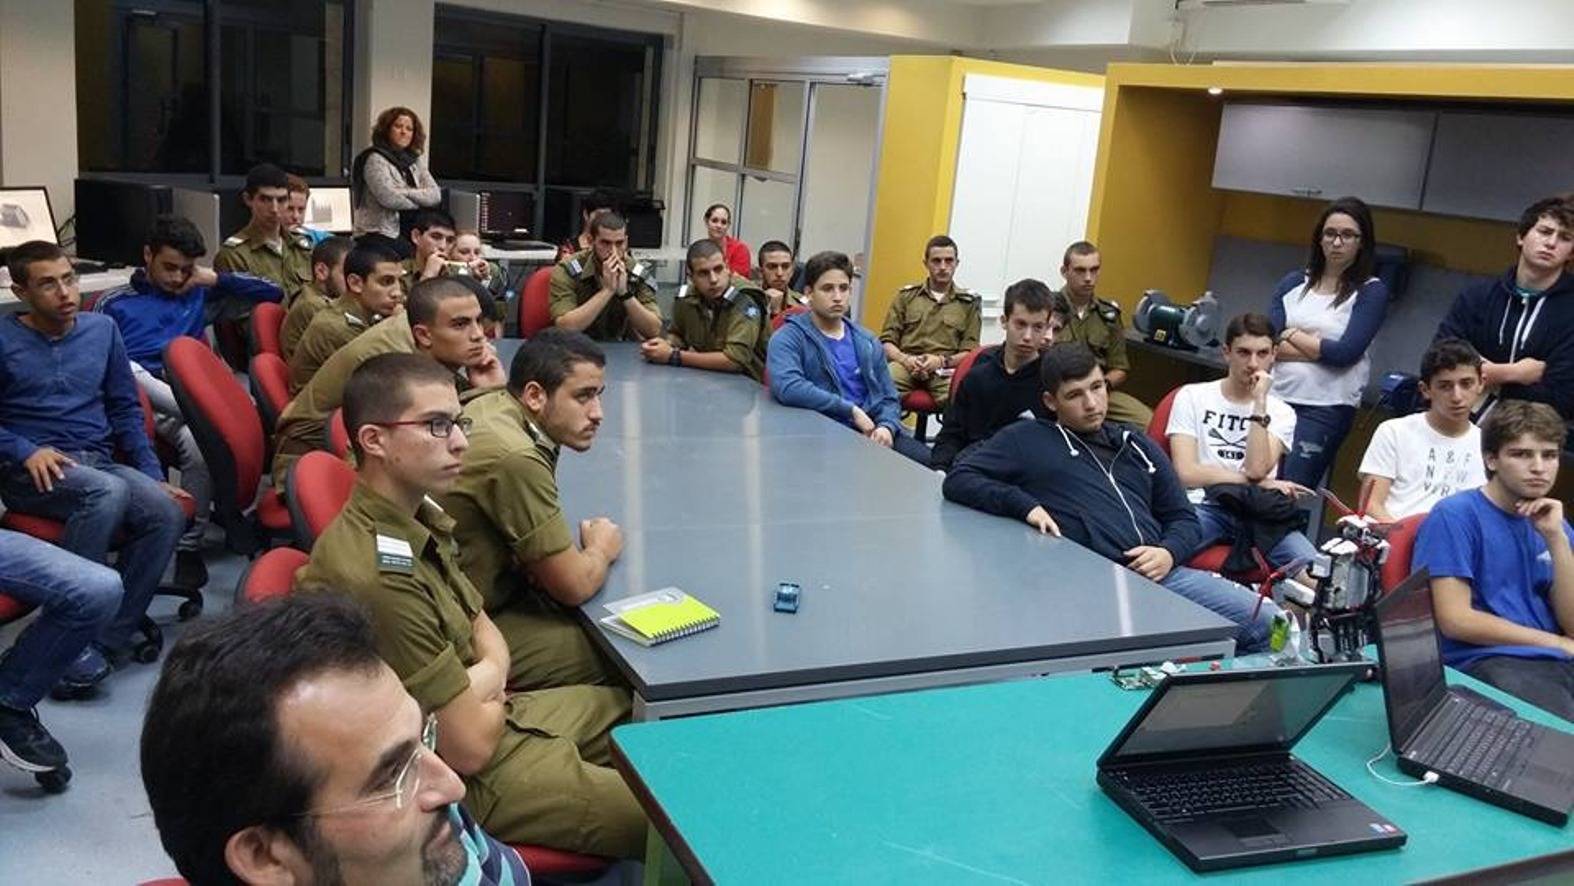 Tech Lounge's opening event at the Reali School in Haifa. Photo: courtesy